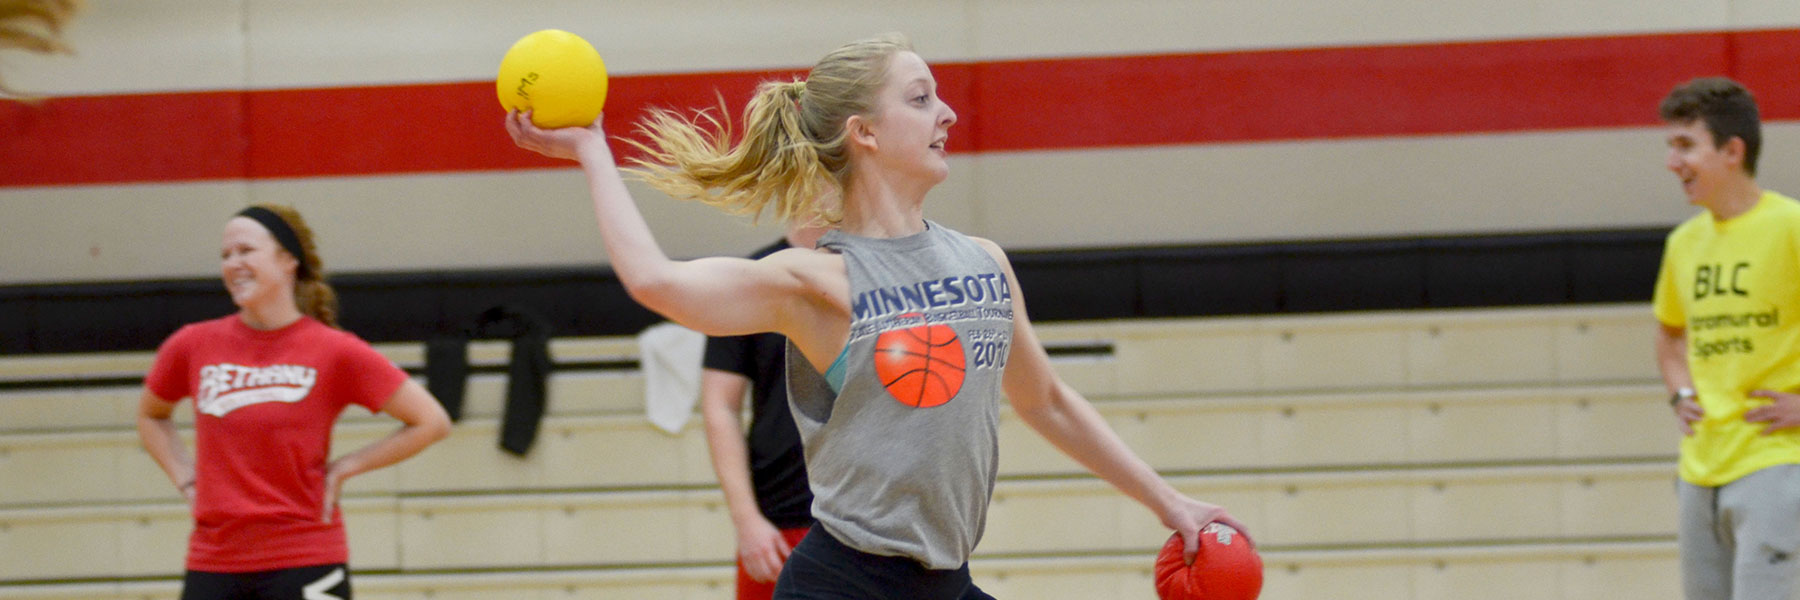 A student in the gymnasium throws balls during an intramural game as other students look on.